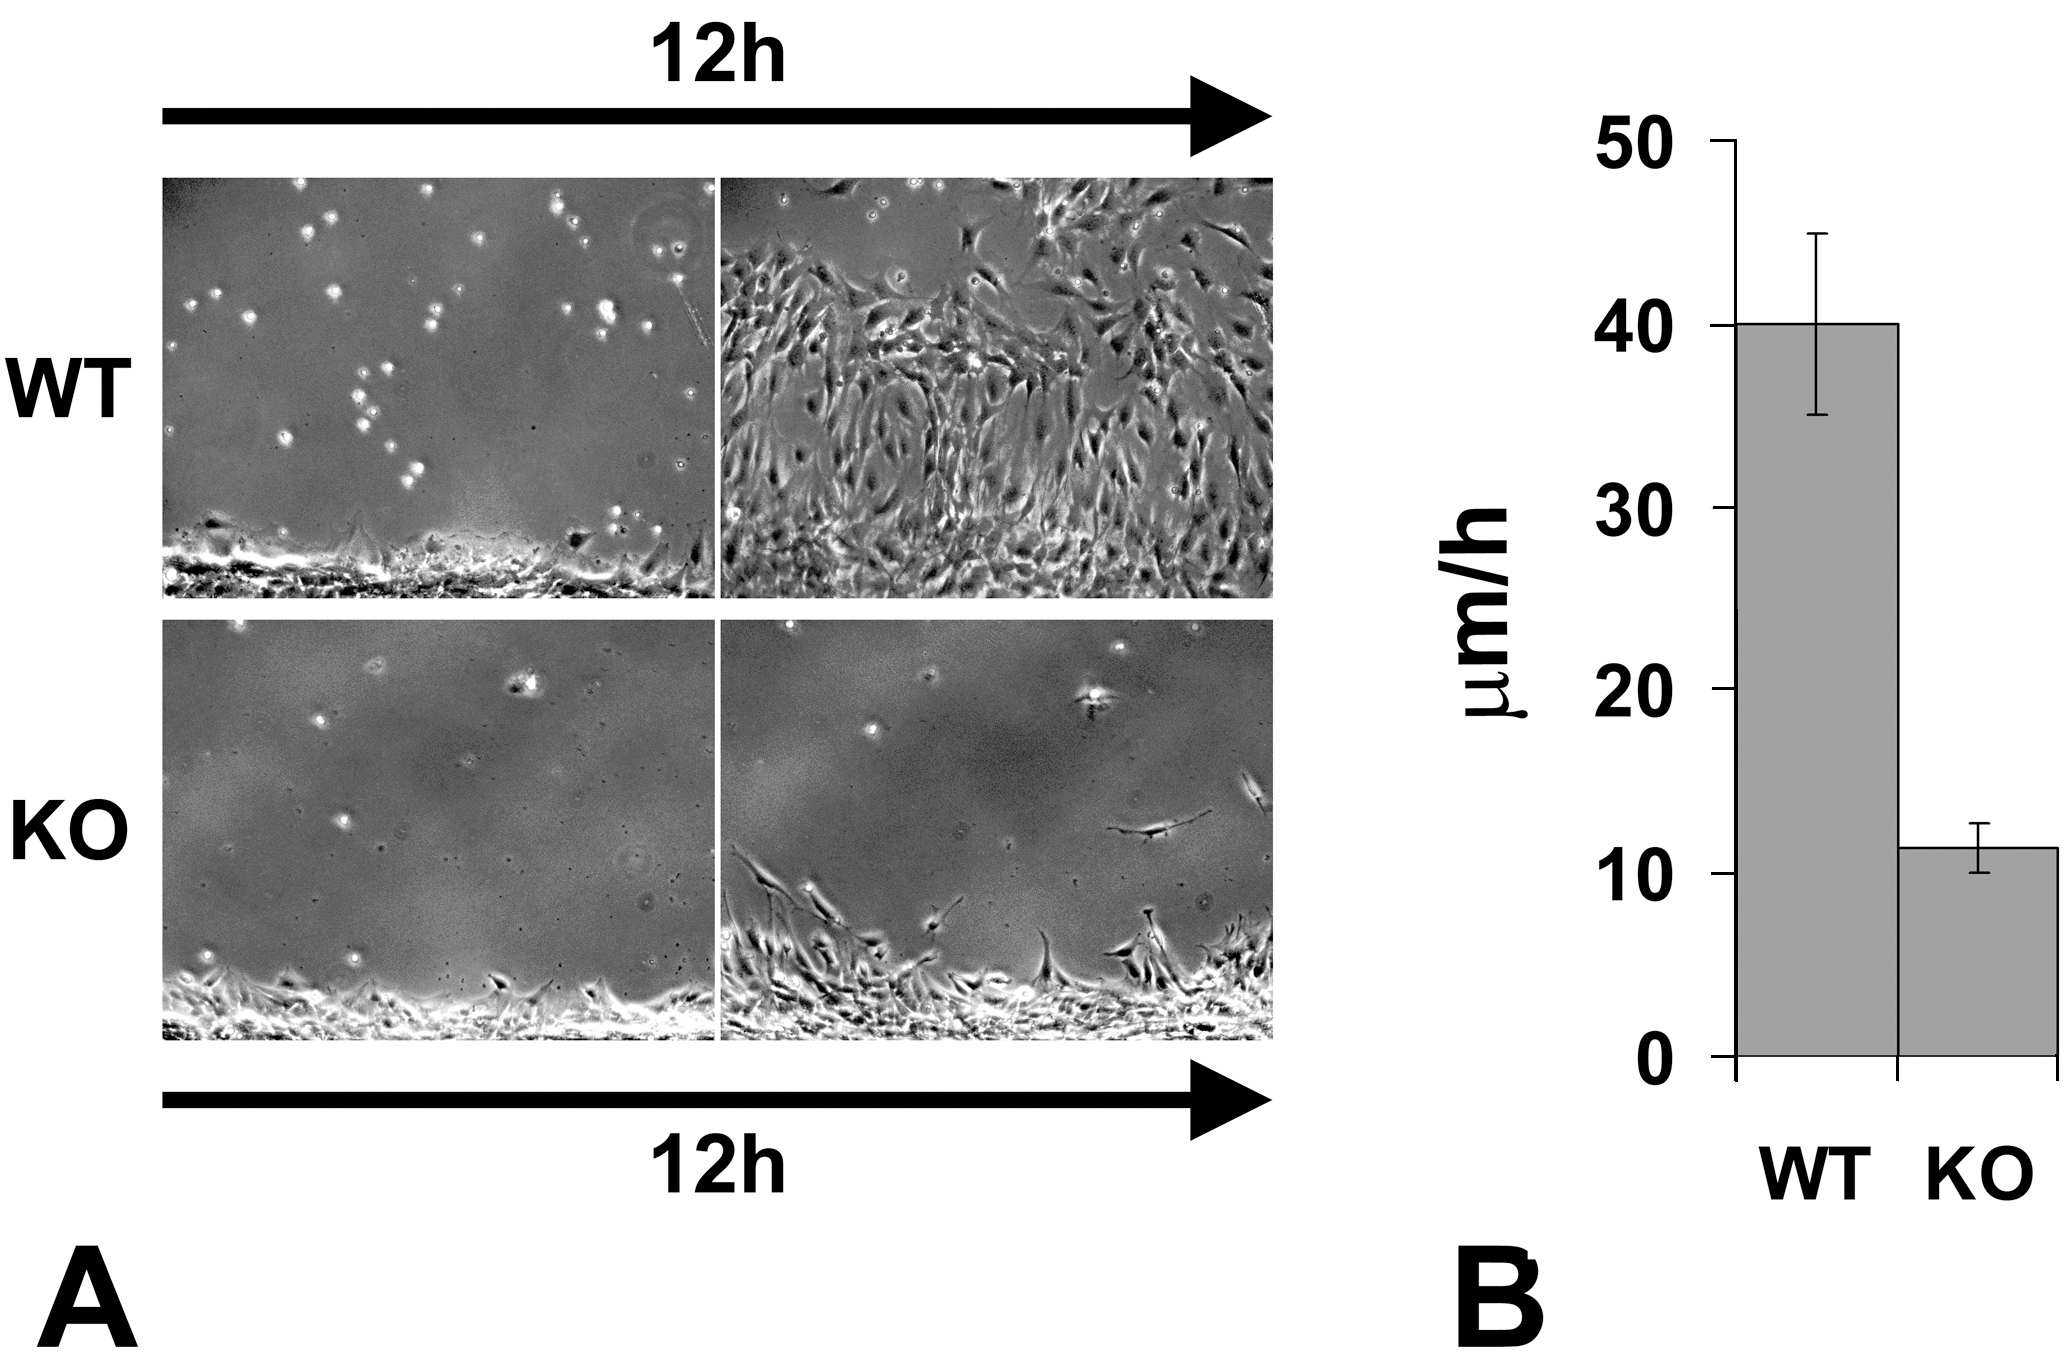 Knockout of the arginyltransferase <i>Ate1</i> in the mesenchymal cells results in a significant reduction in their migration speeds.